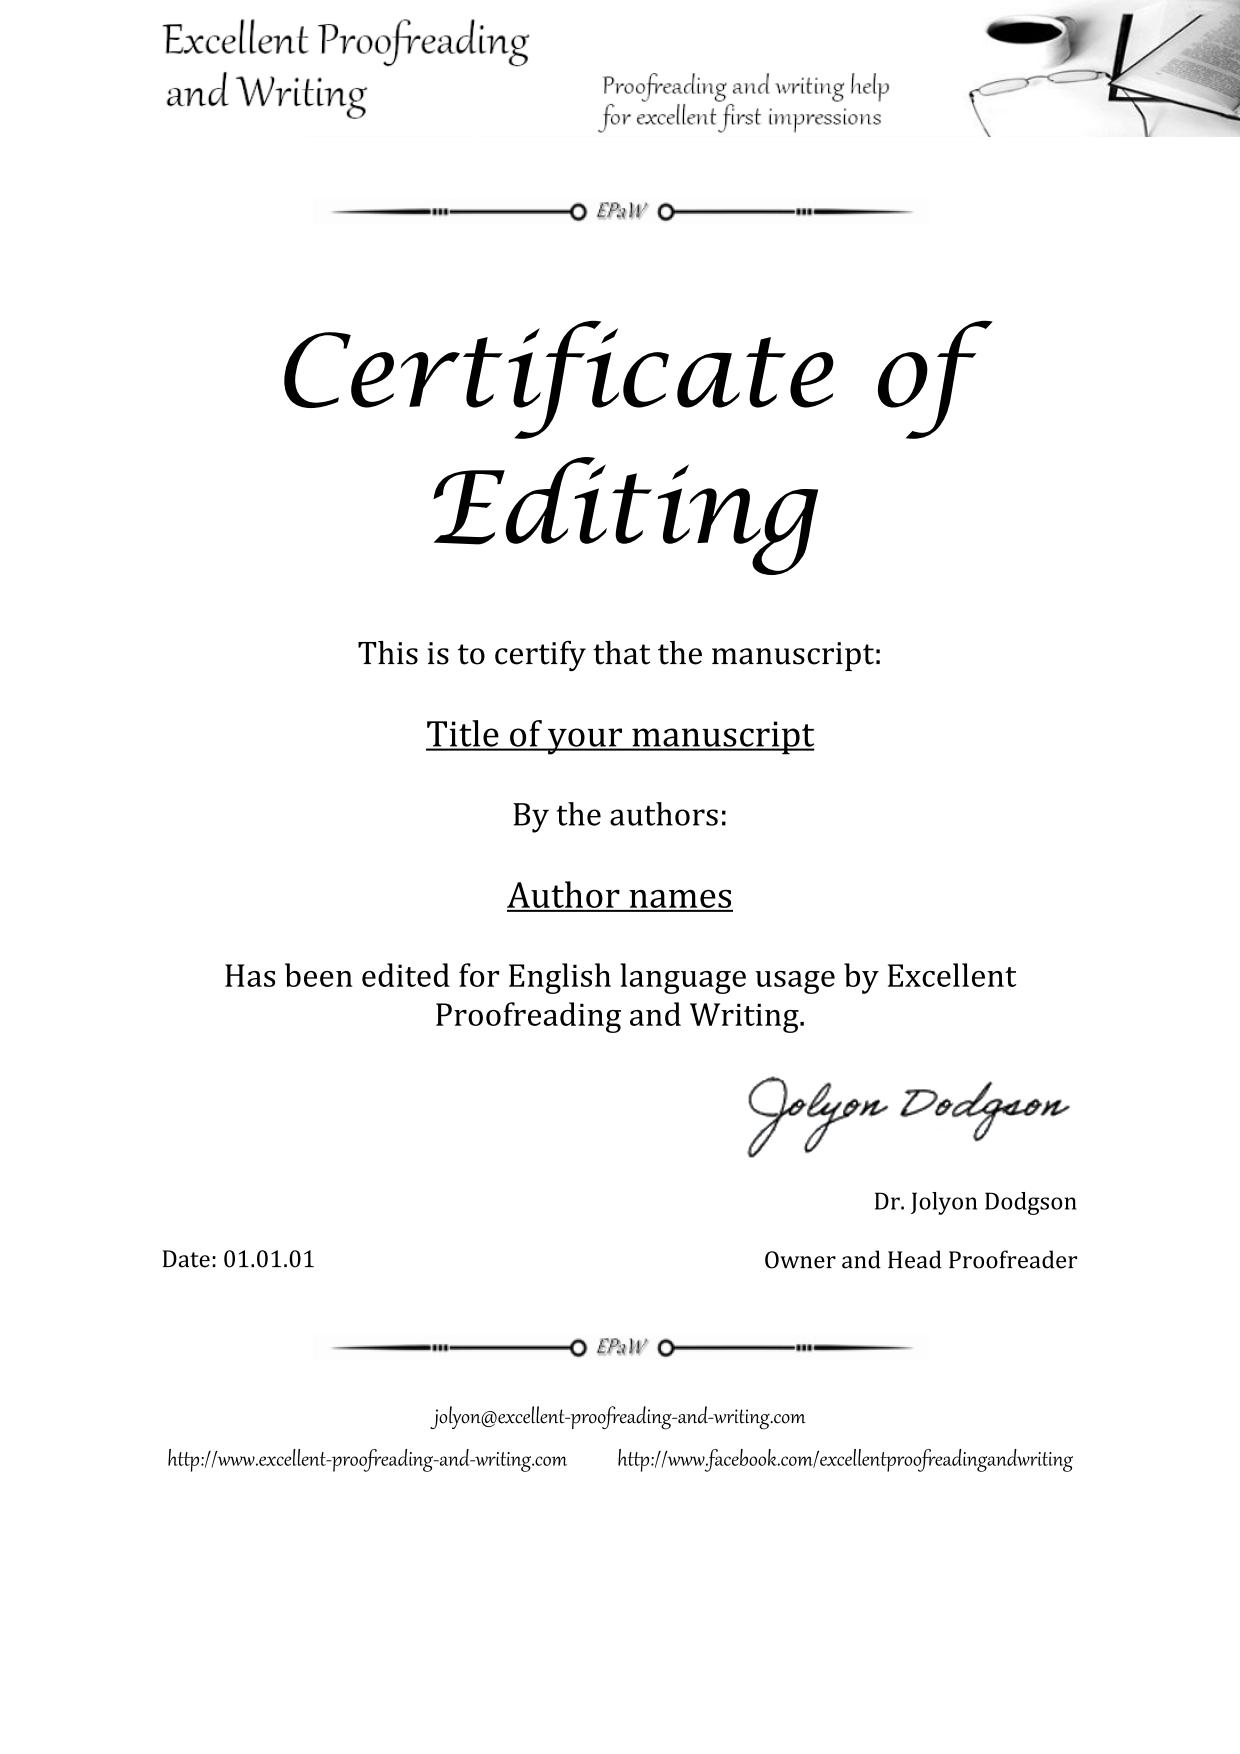 013 Essay Example Proofread Certificate Of Unique Proofreading Service Website University Full